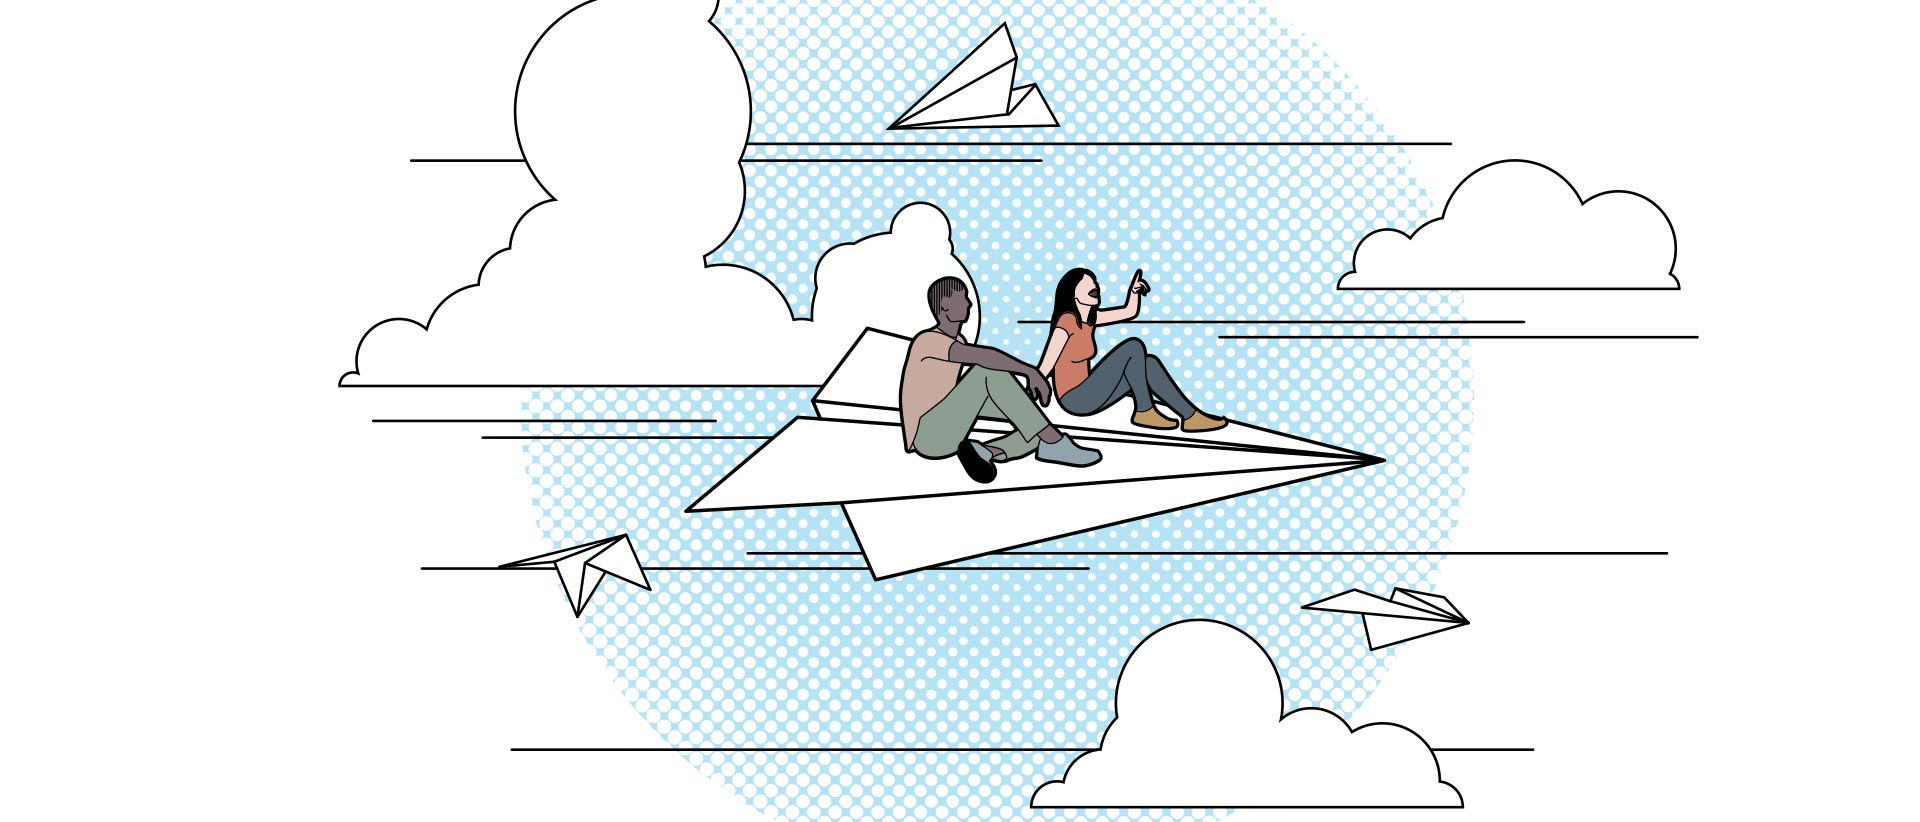 Illustration of two people riding on a large paper airplane as it flies through the sky